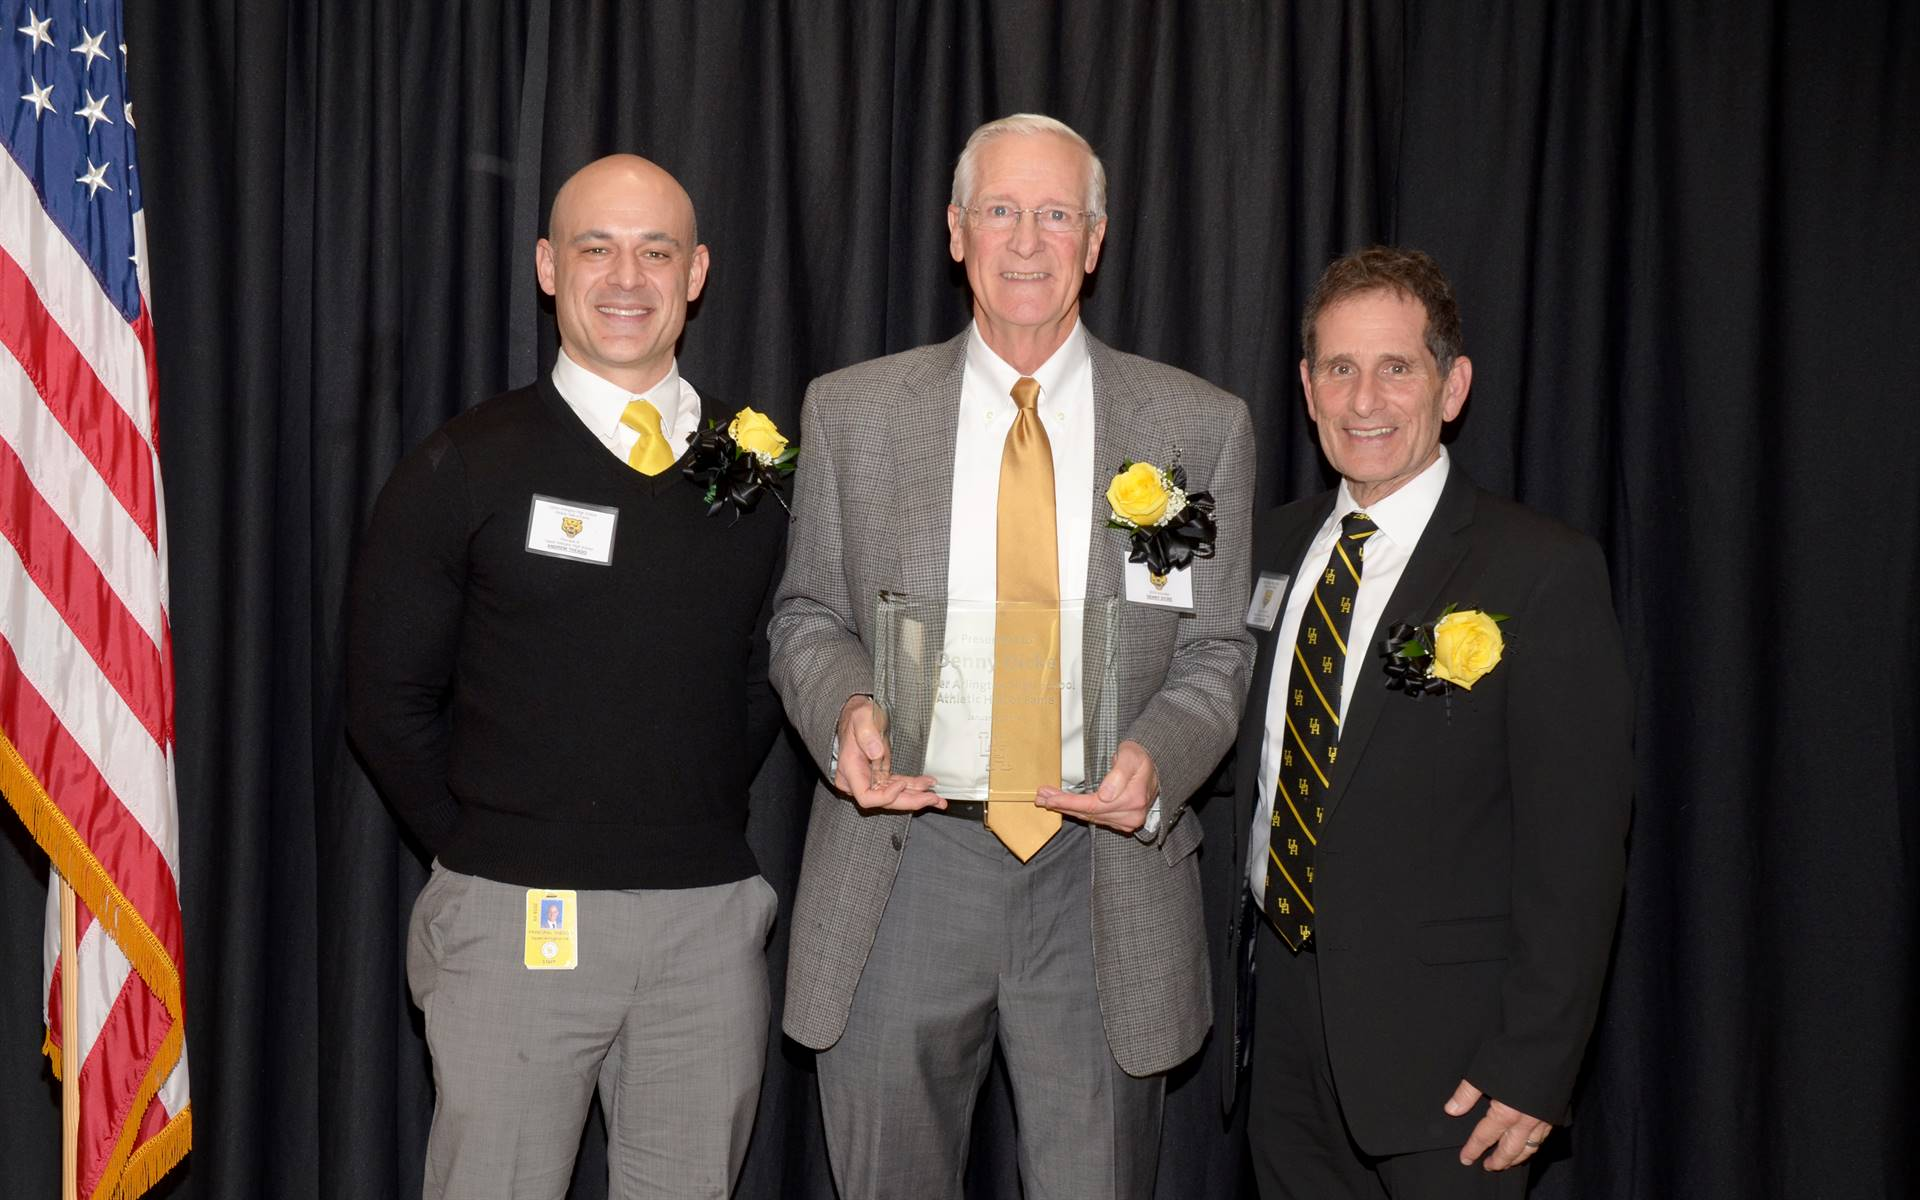 Inductee Denny Dicke with Principal Andrew Theado and Athletic Director Tony Pusateri